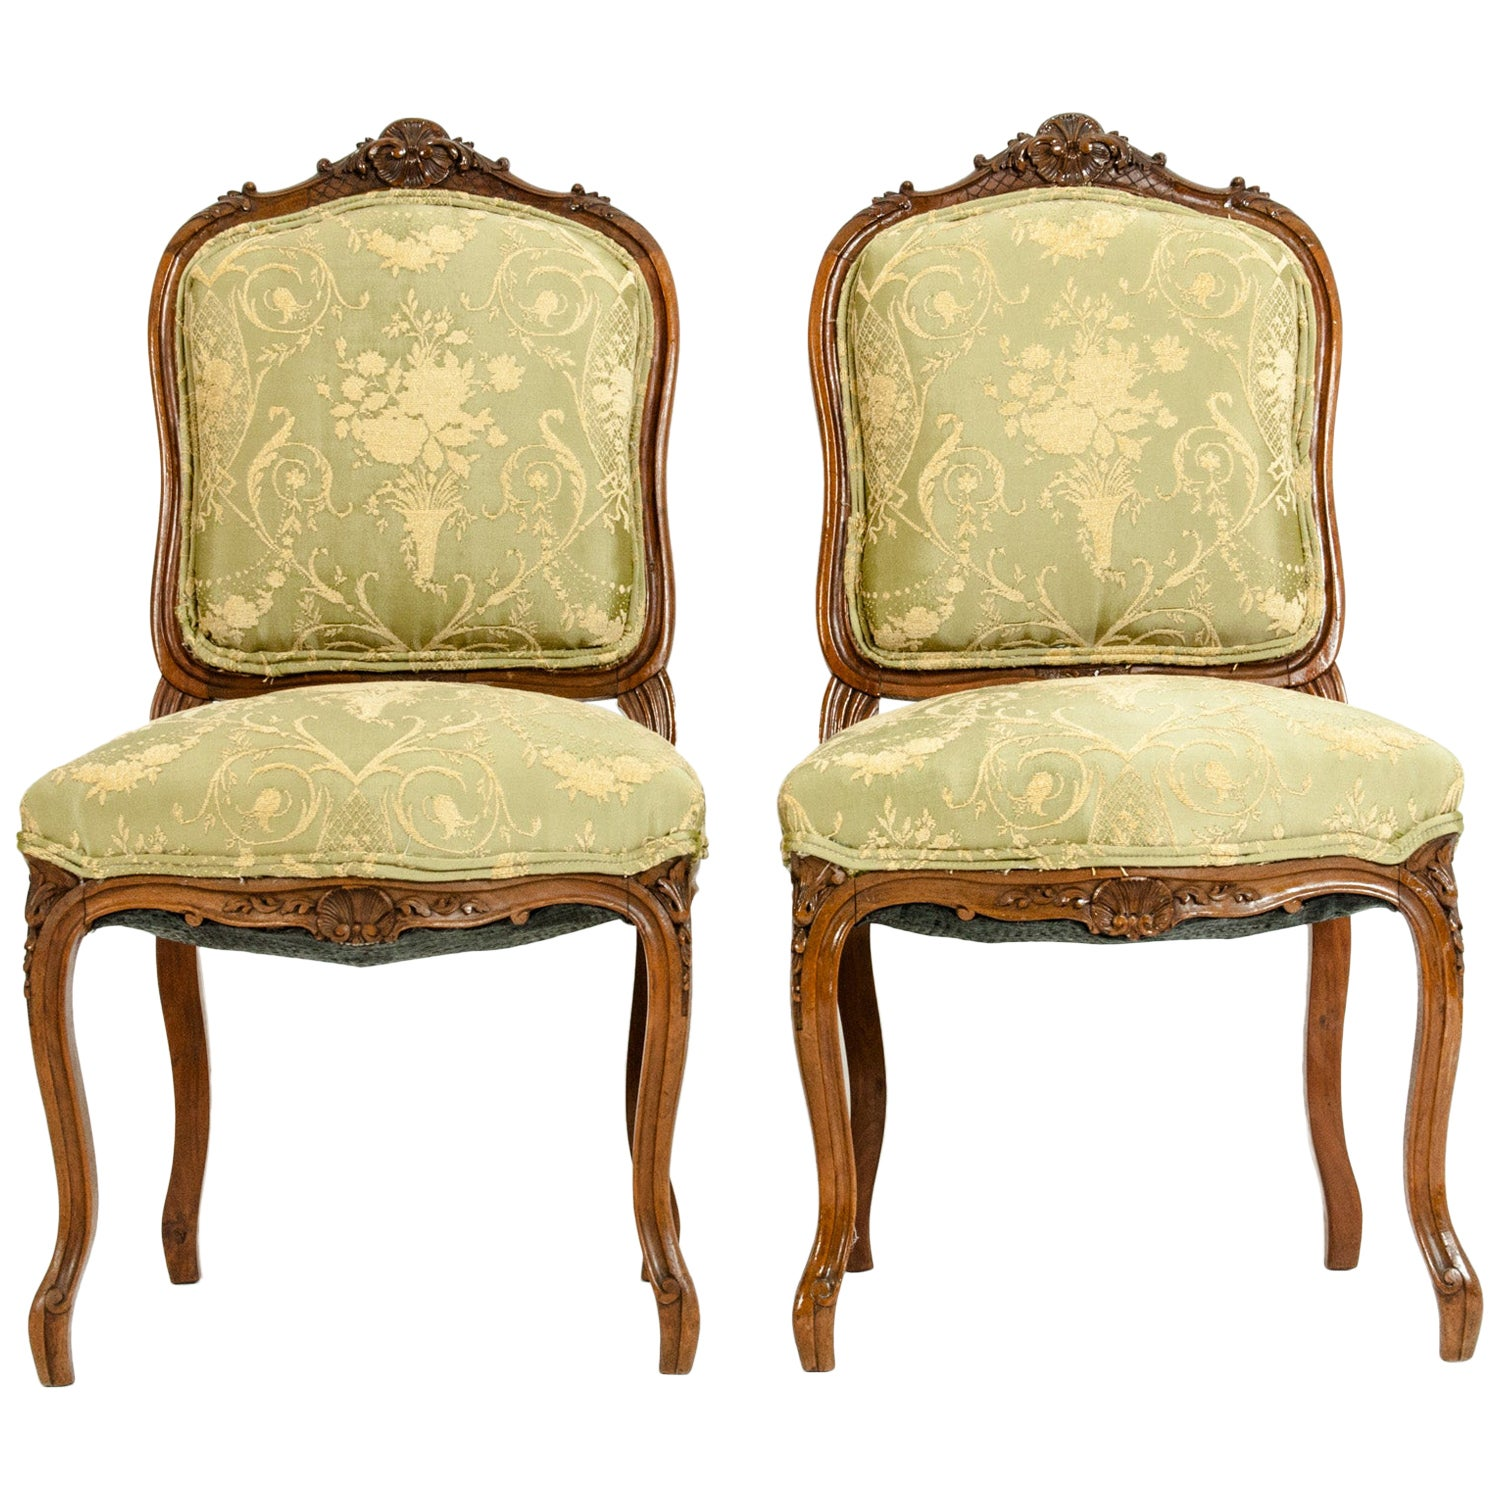 Mid-19th Century Mahogany Wood Frame Side Chairs